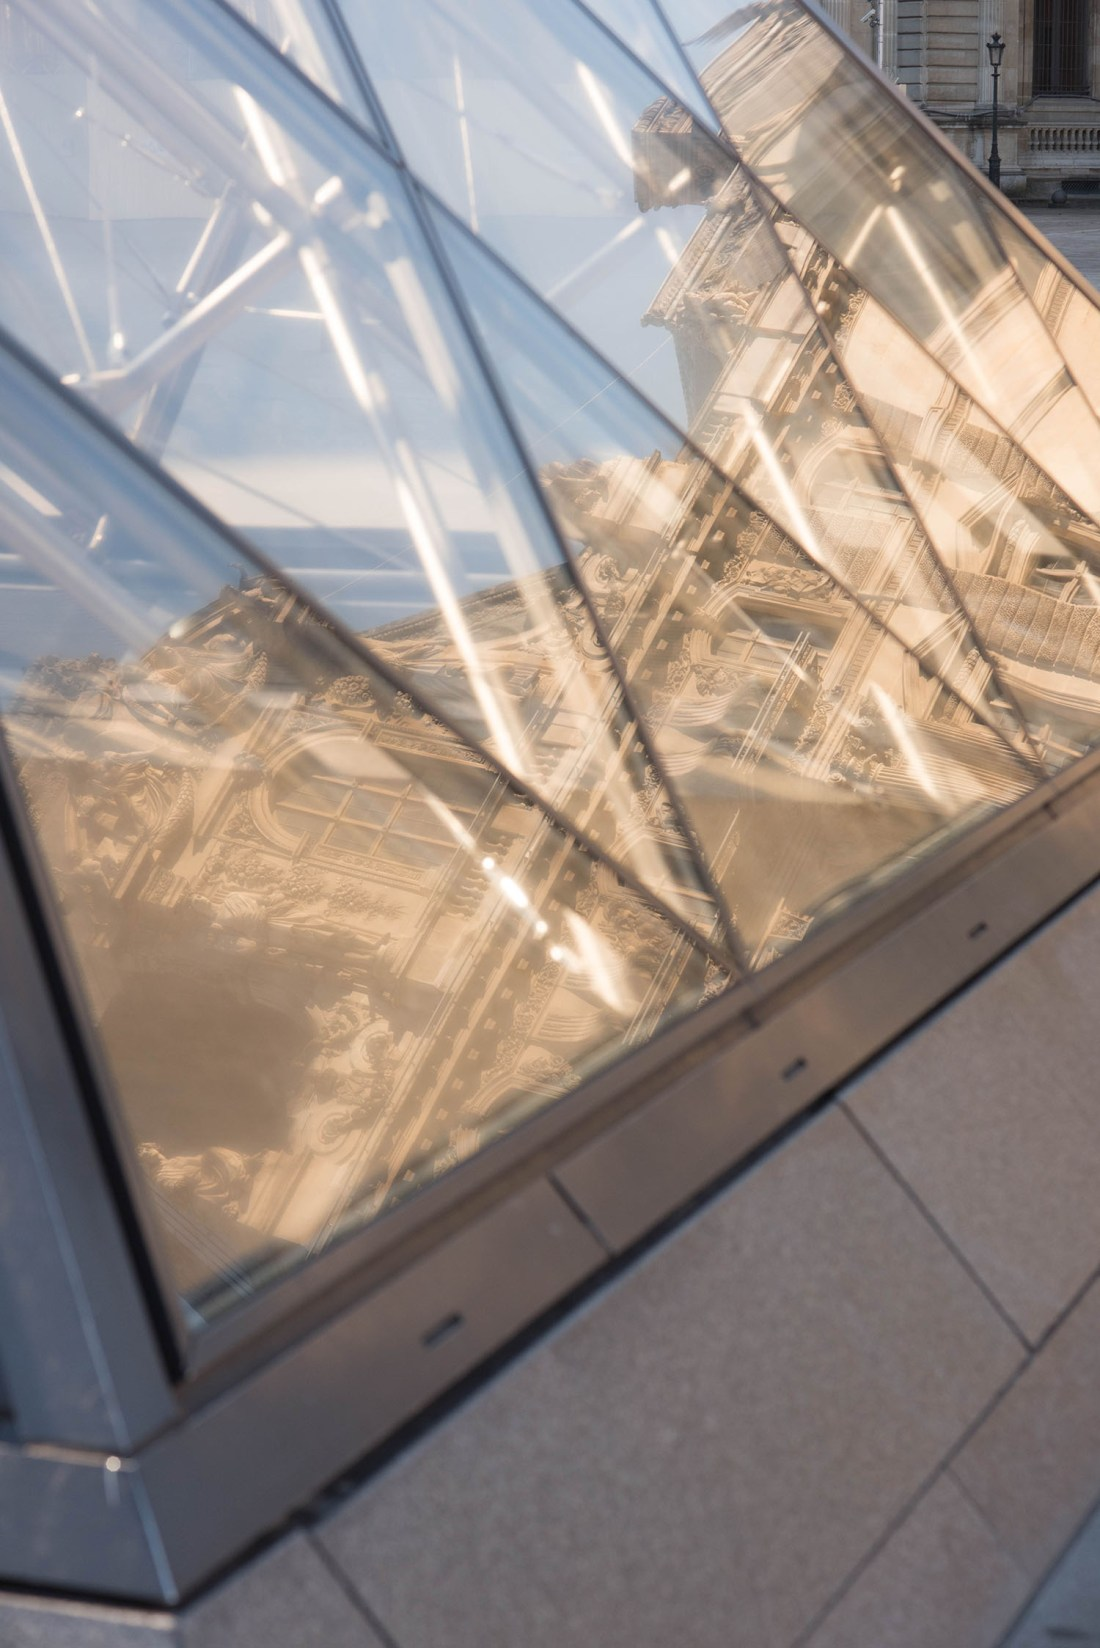 Reflections of the Palais du Louvre in the Louvre Pyramid in Paris, captured by top travel blogger Cee Fardoe of Coco & Vera